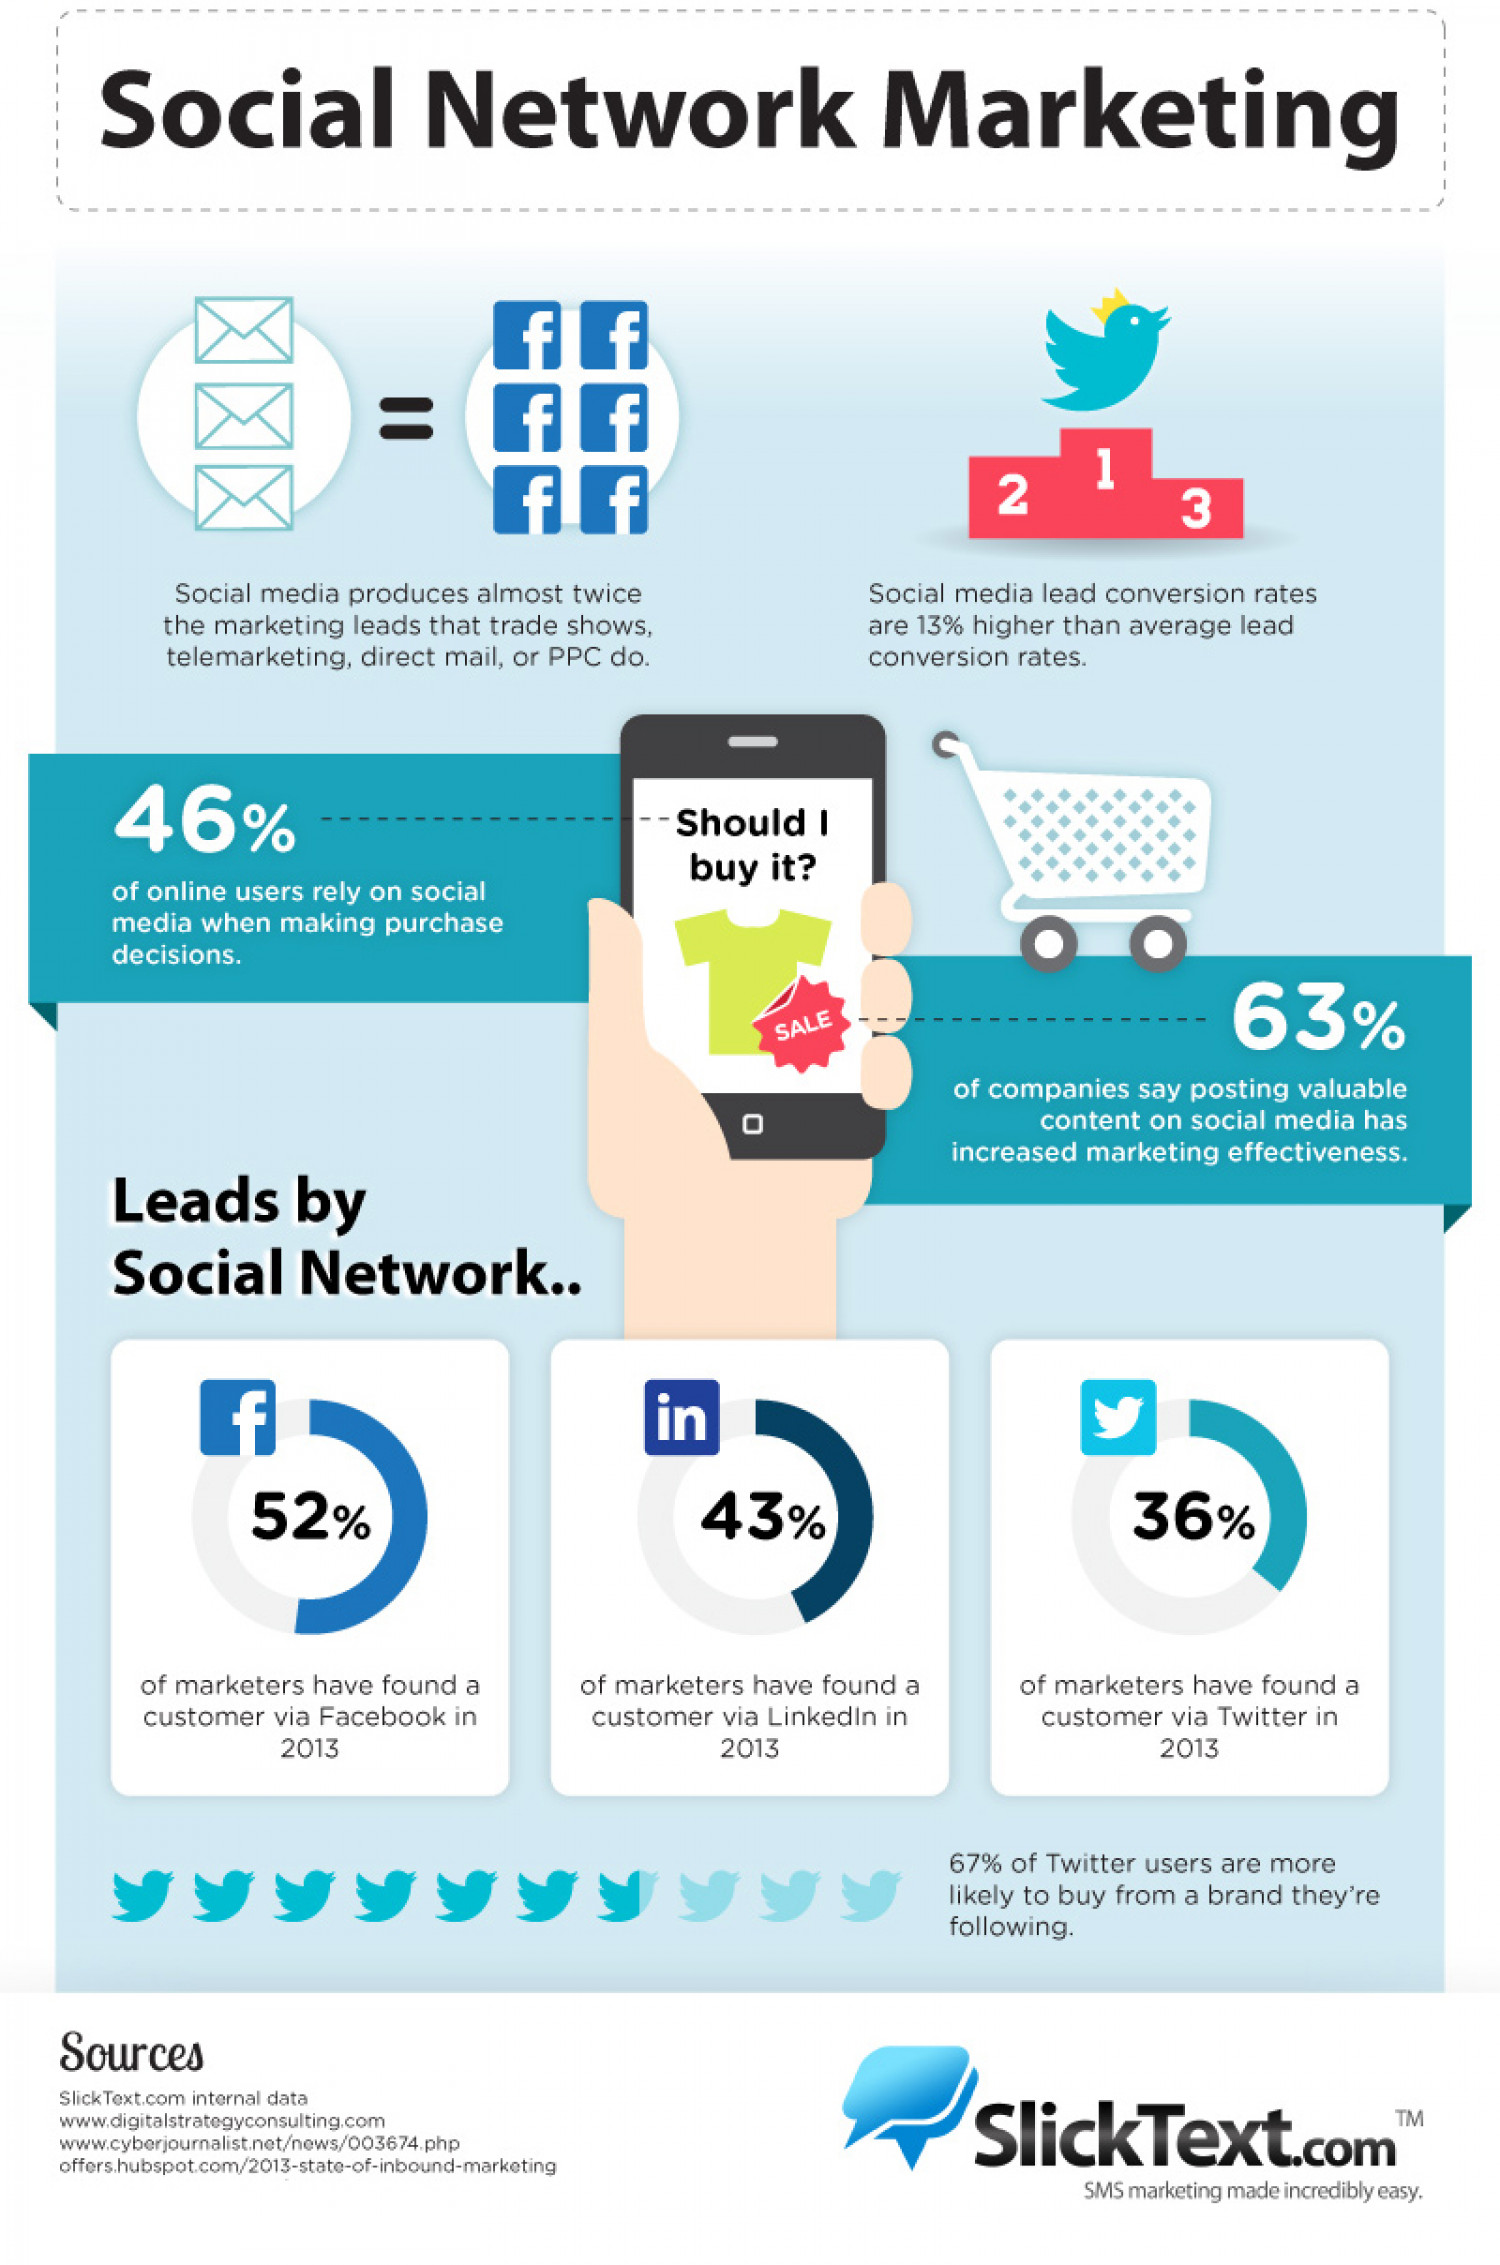 Social Network Marketing Infographic